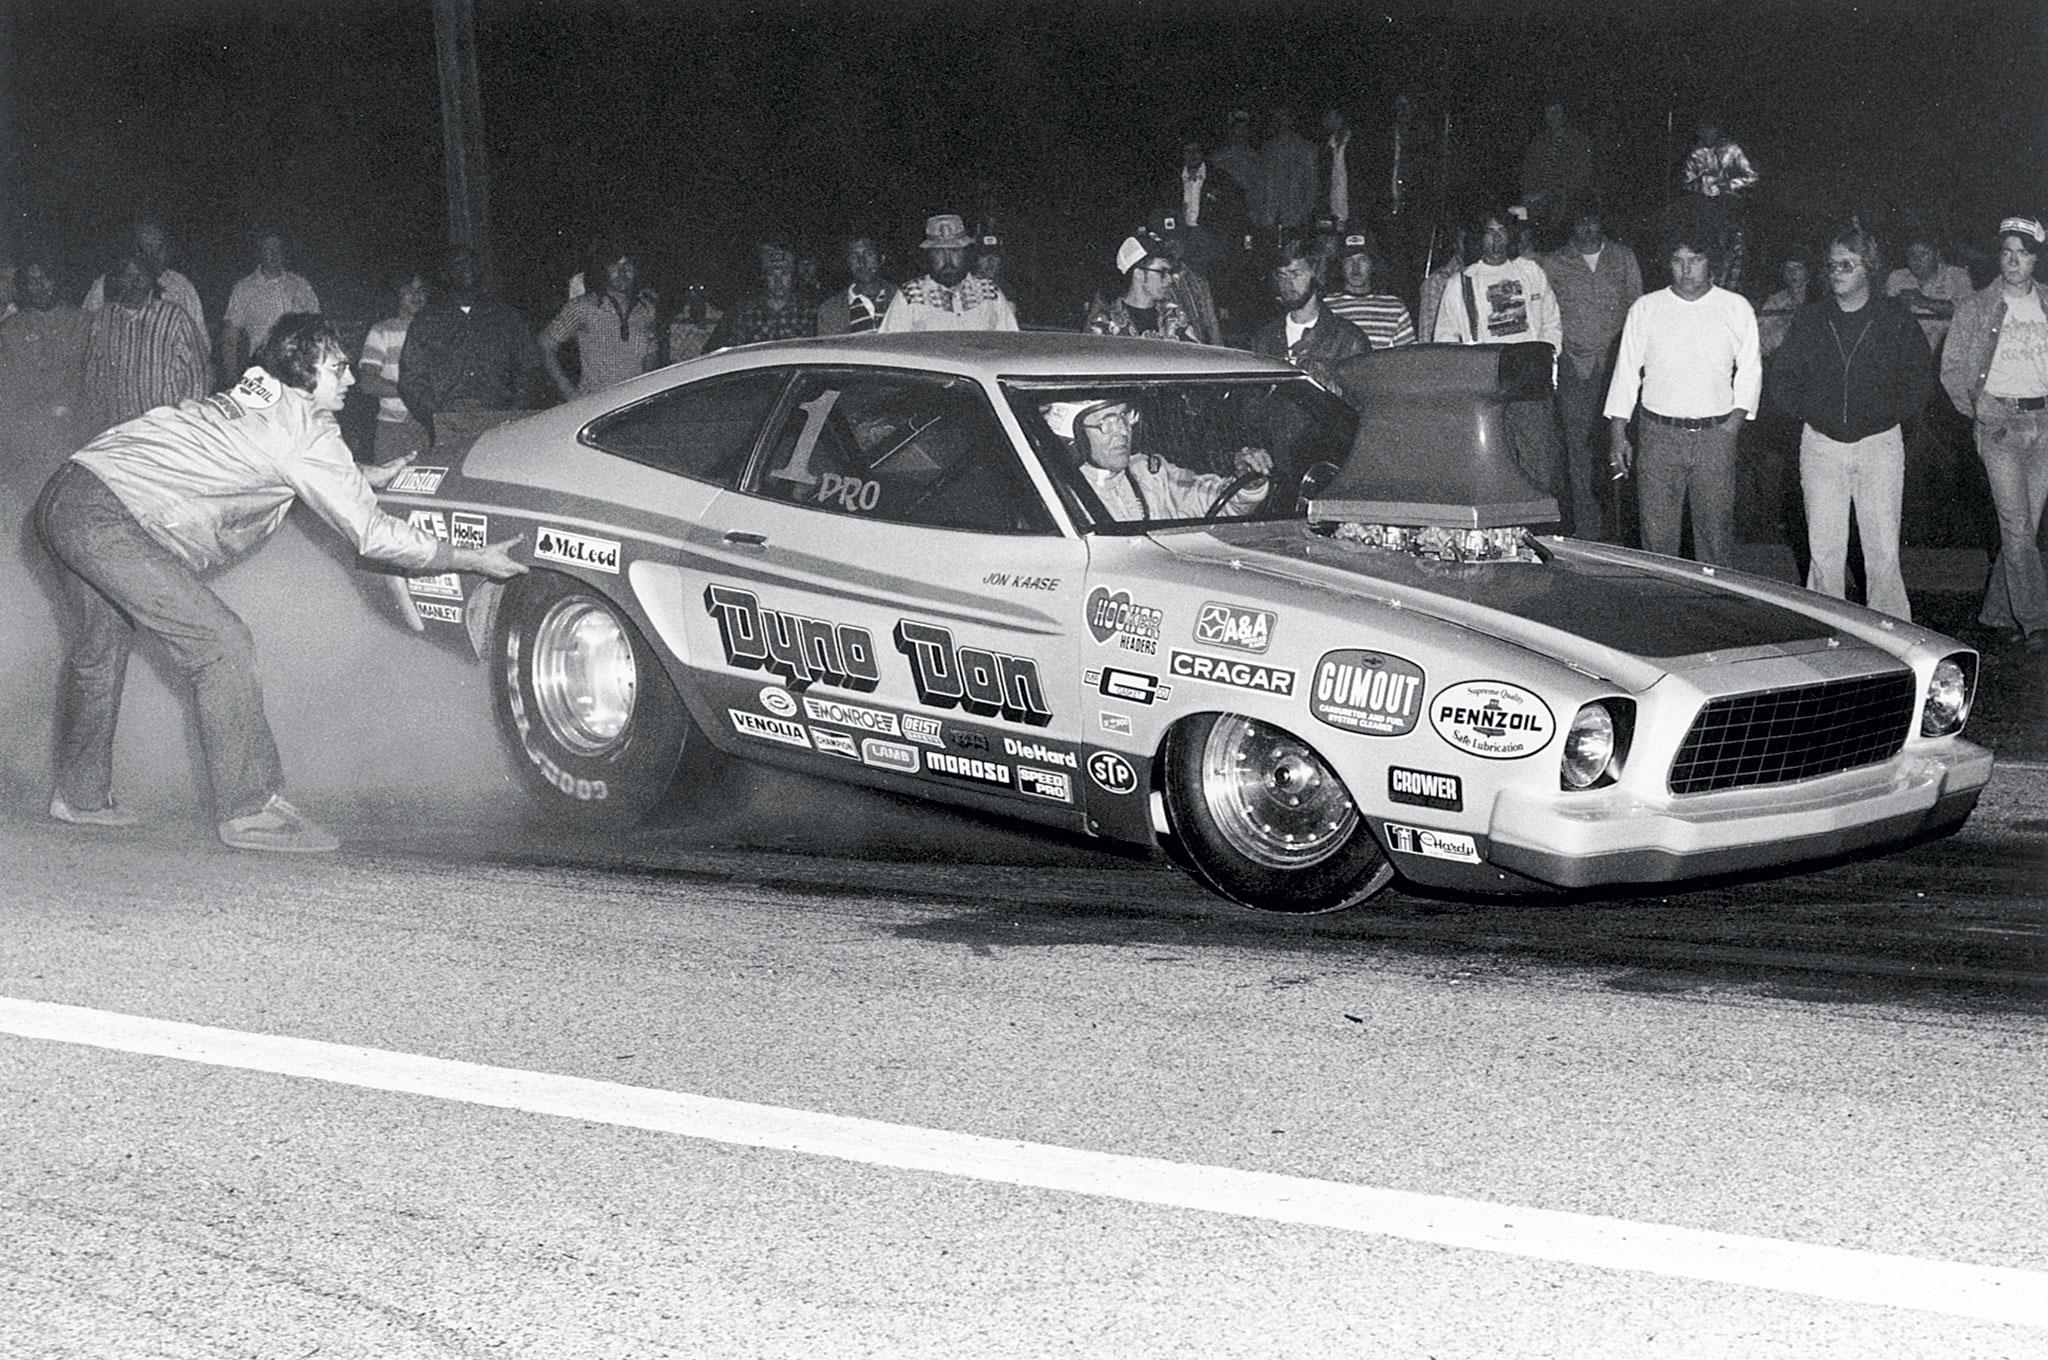 Back in the 1970s, it was acceptable to hold the corner of the car to keep it in the water. You can't touch the car now. Note the 1 Pro in the window. This is from 1978.